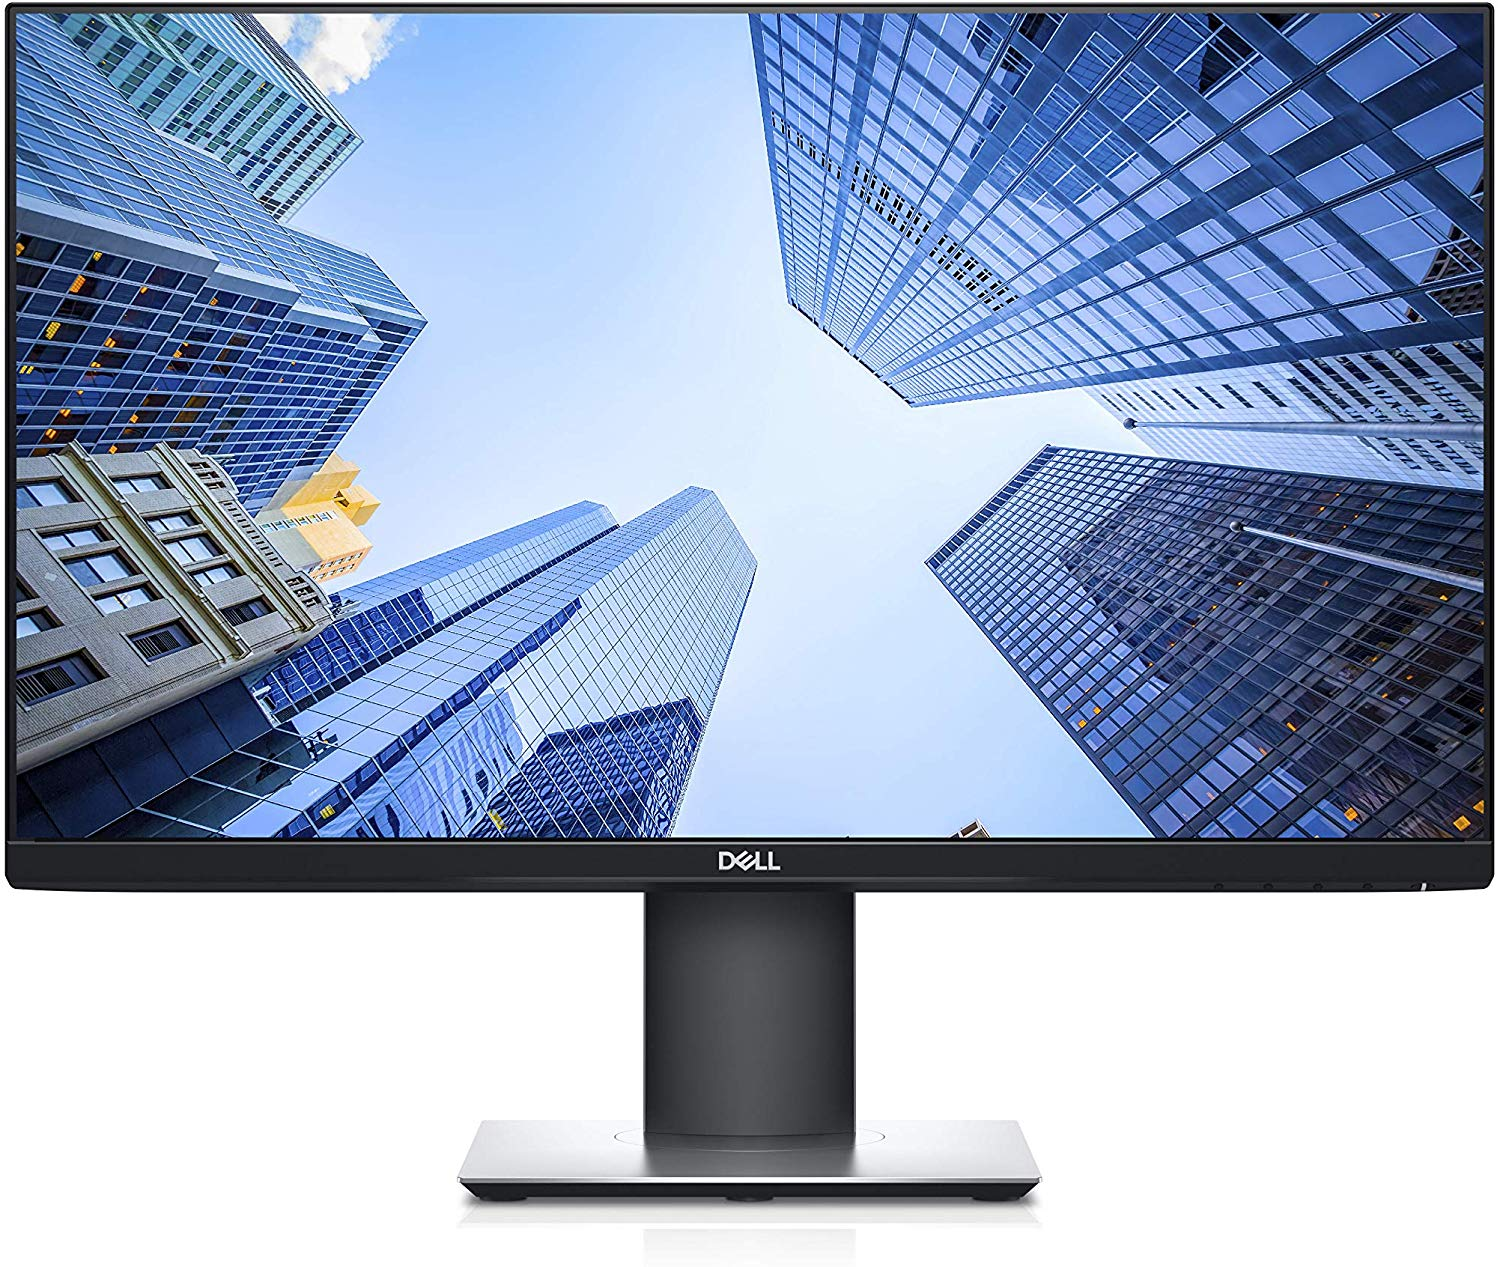 "24"" Dell P Series P2419H Professional Monitor is $90 Cheaper This Month, It Can Now Be Bought for $160"